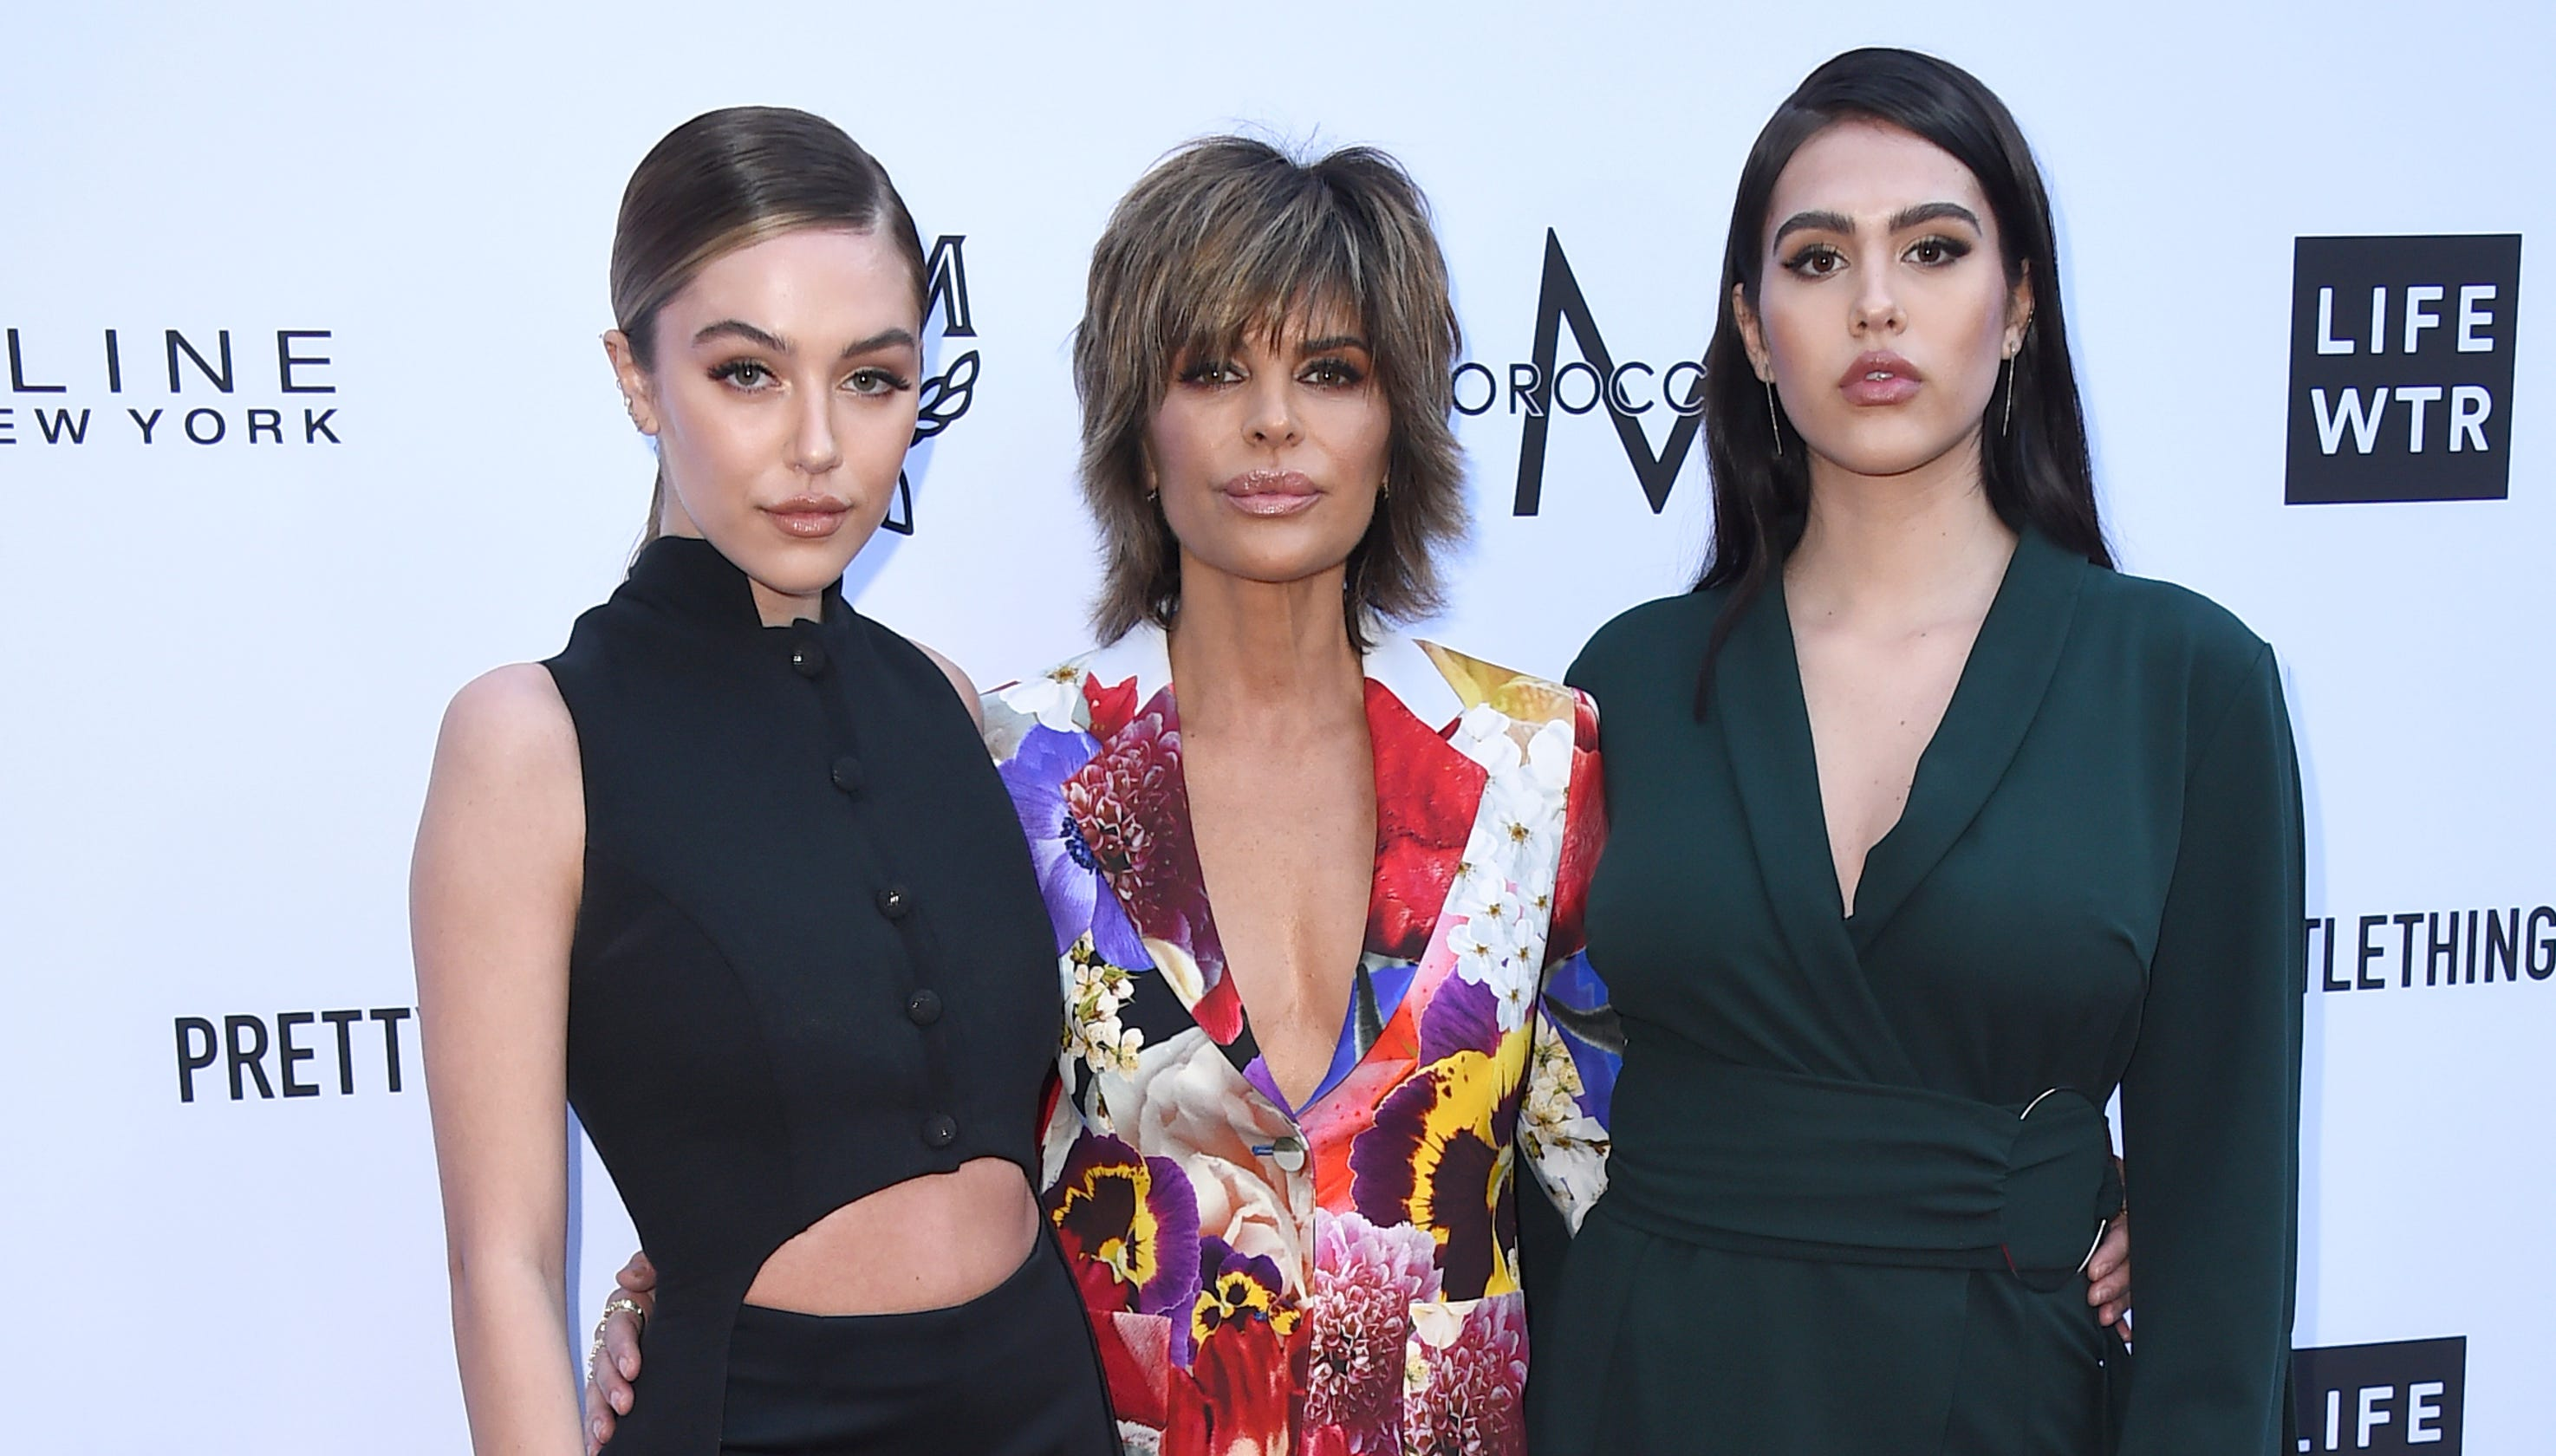 7e5fbbec7ef7 Lisa Rinna s daughter Amelia Gray opens up about eating disorders